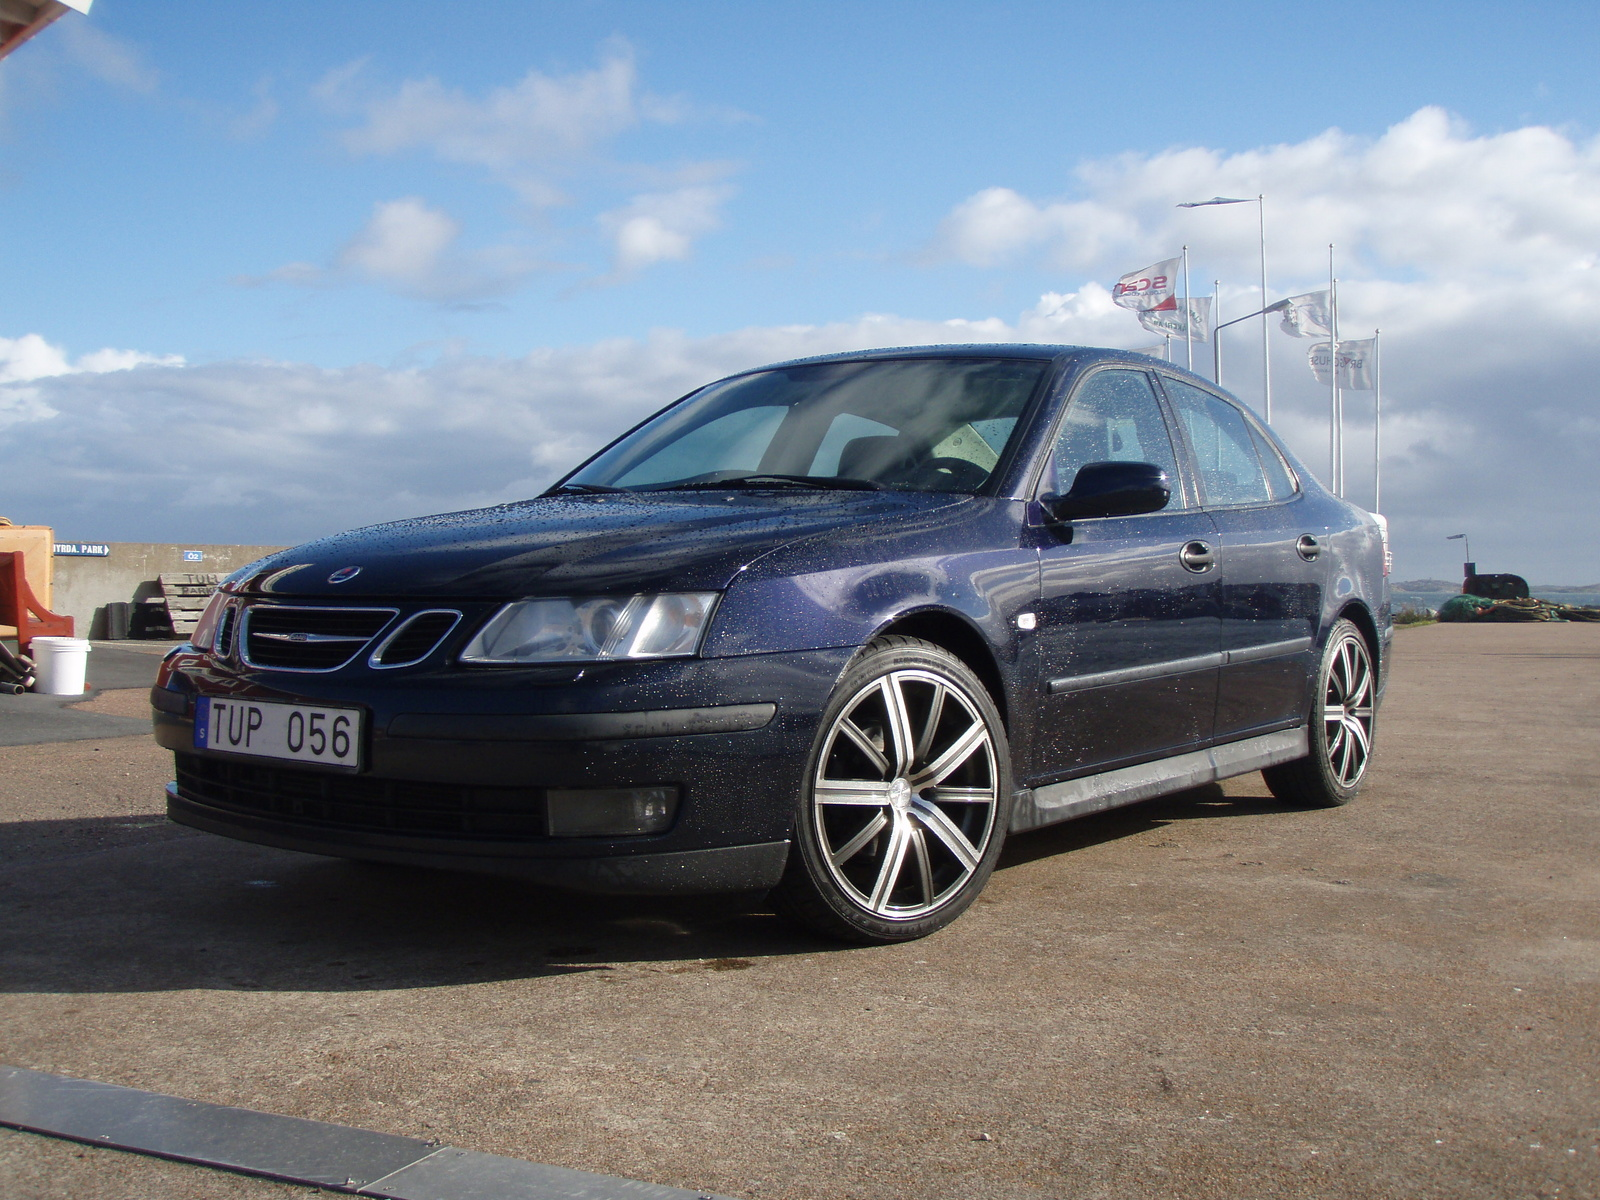 2003 Saab 9-3 Linear picture, exterior